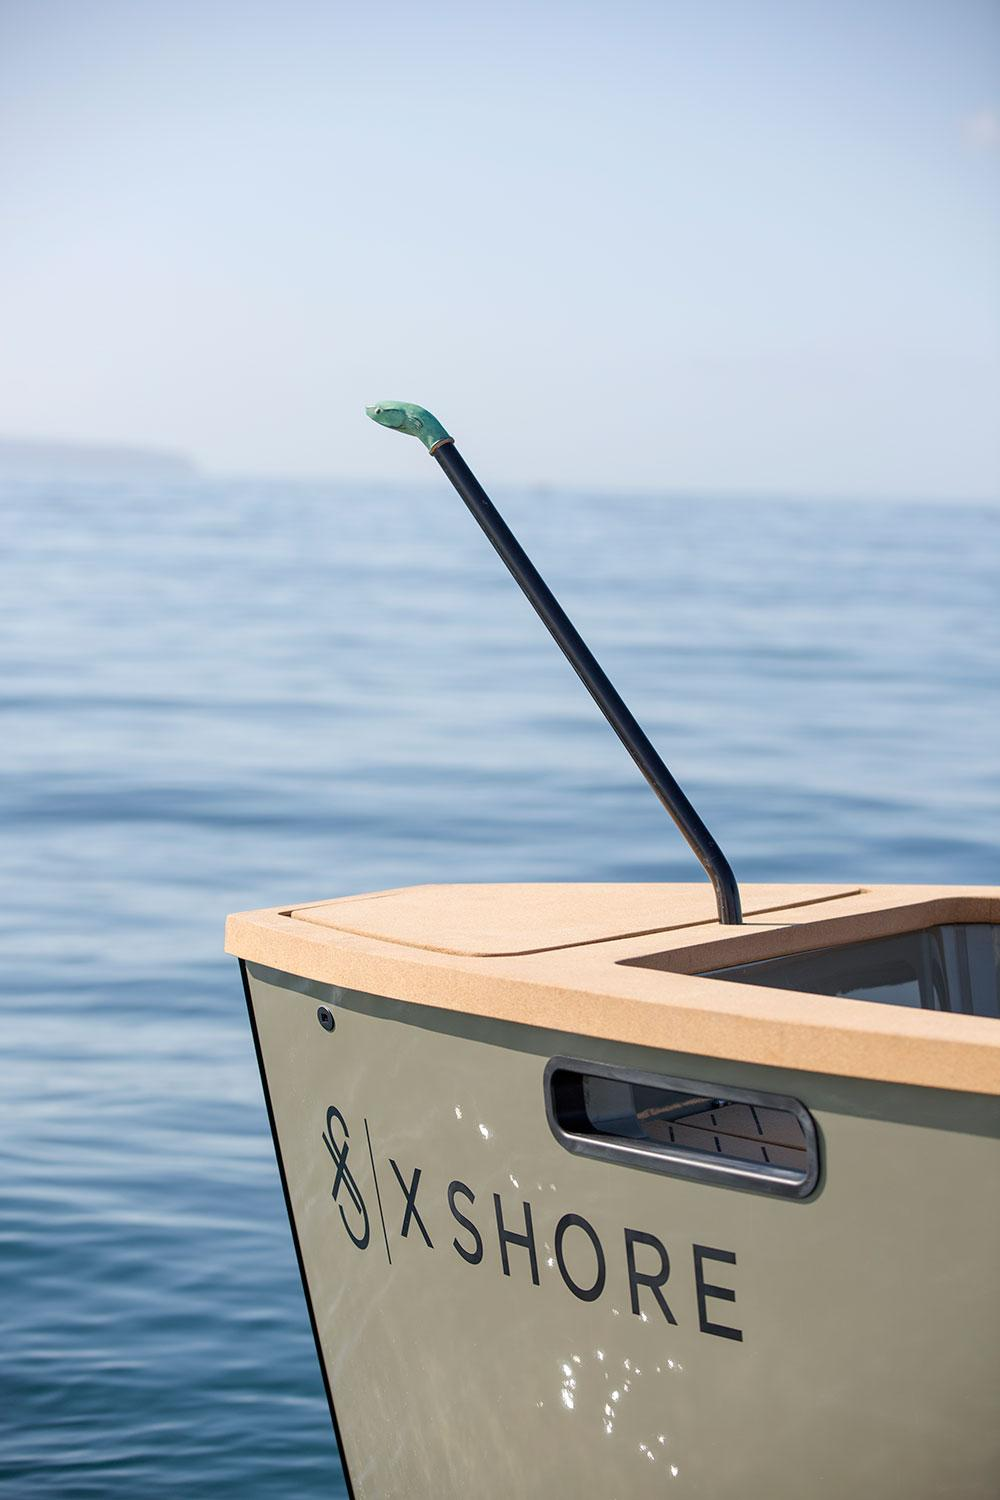 X Shore electric boat prow